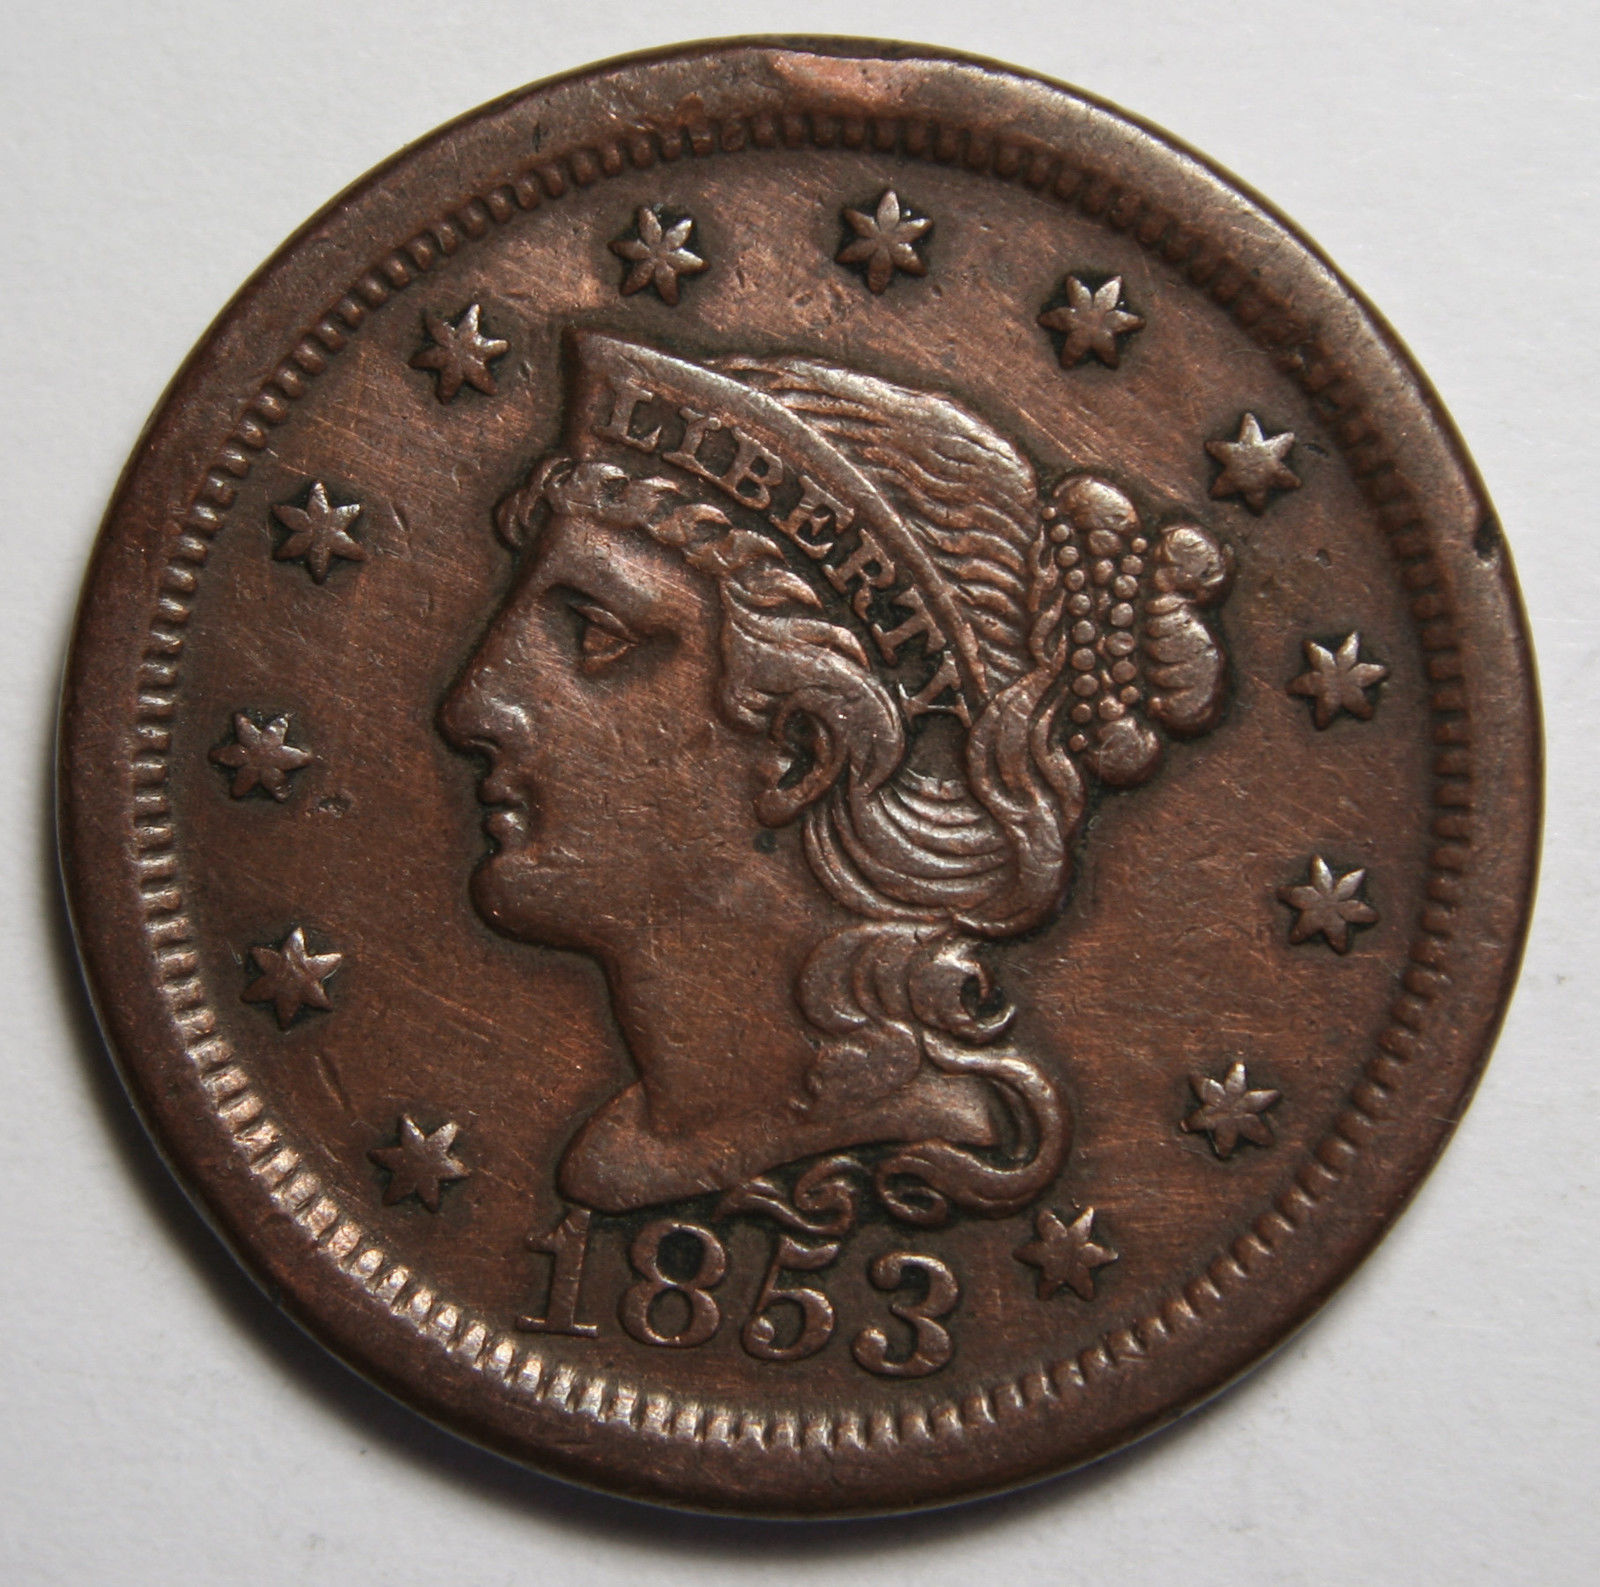 1853 Large Cent Liberty Braided Hair Head Coin Lot # MZ 4105